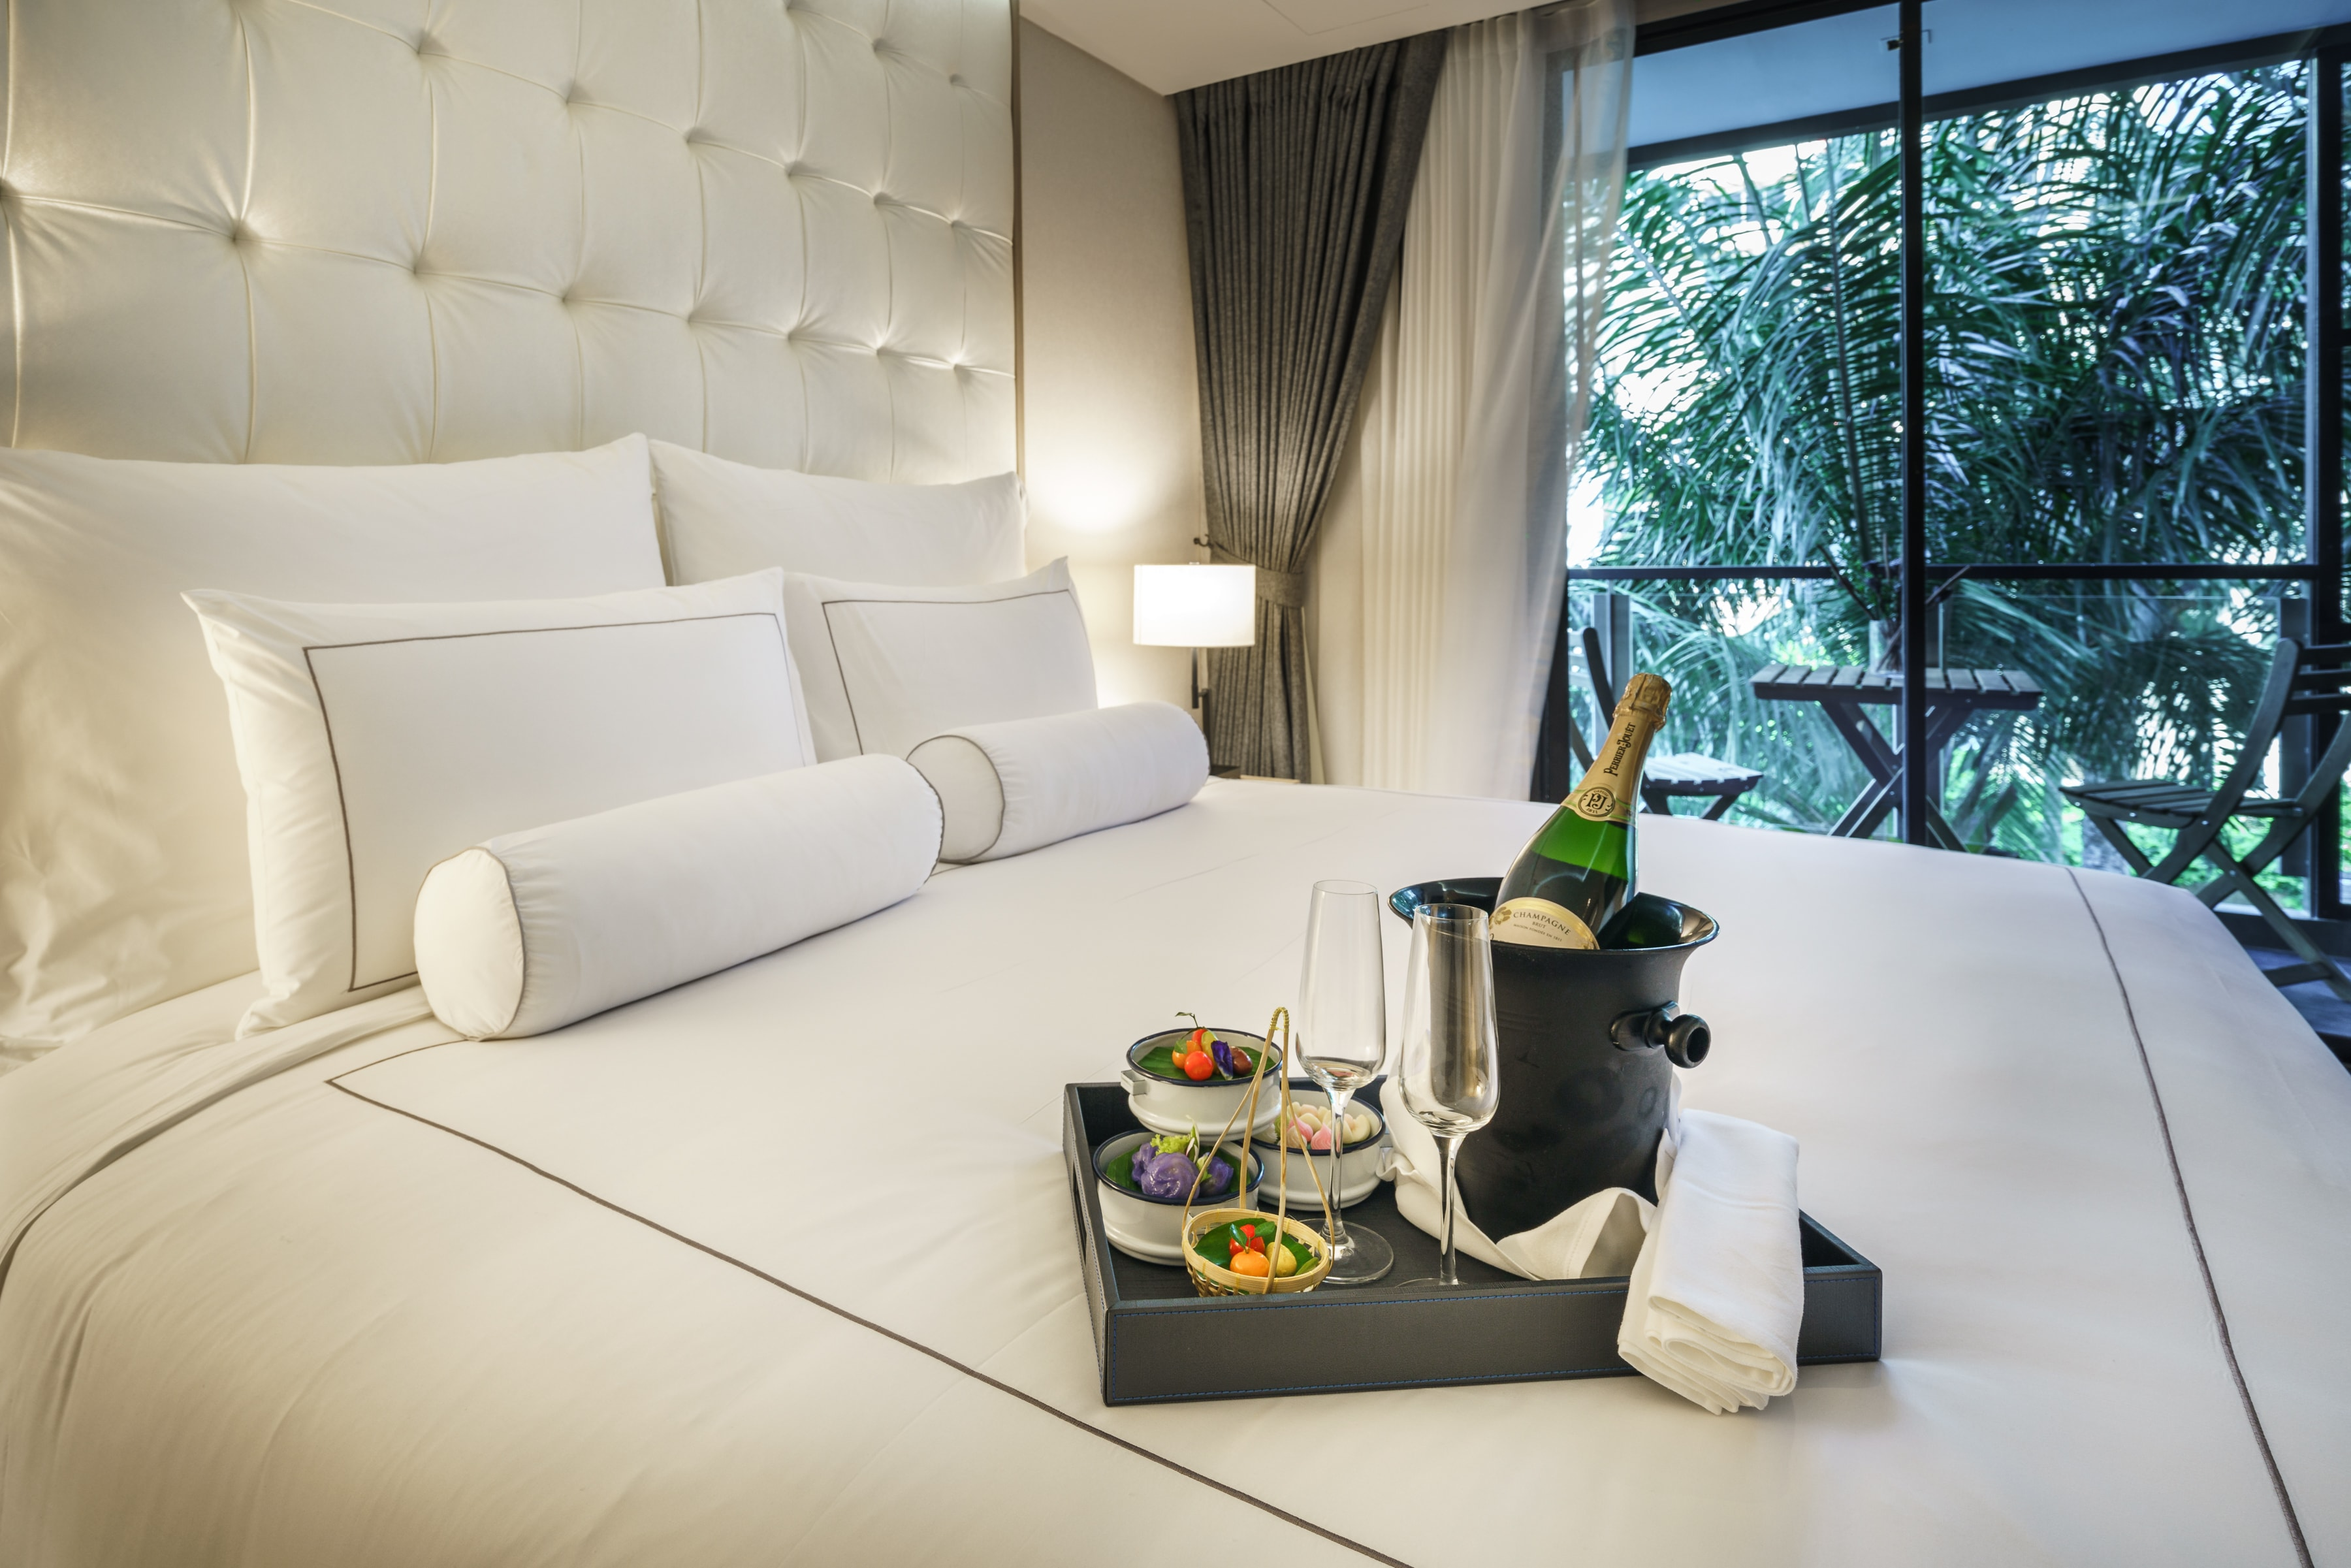 Asia's First Single-use Plastic Free Hotel